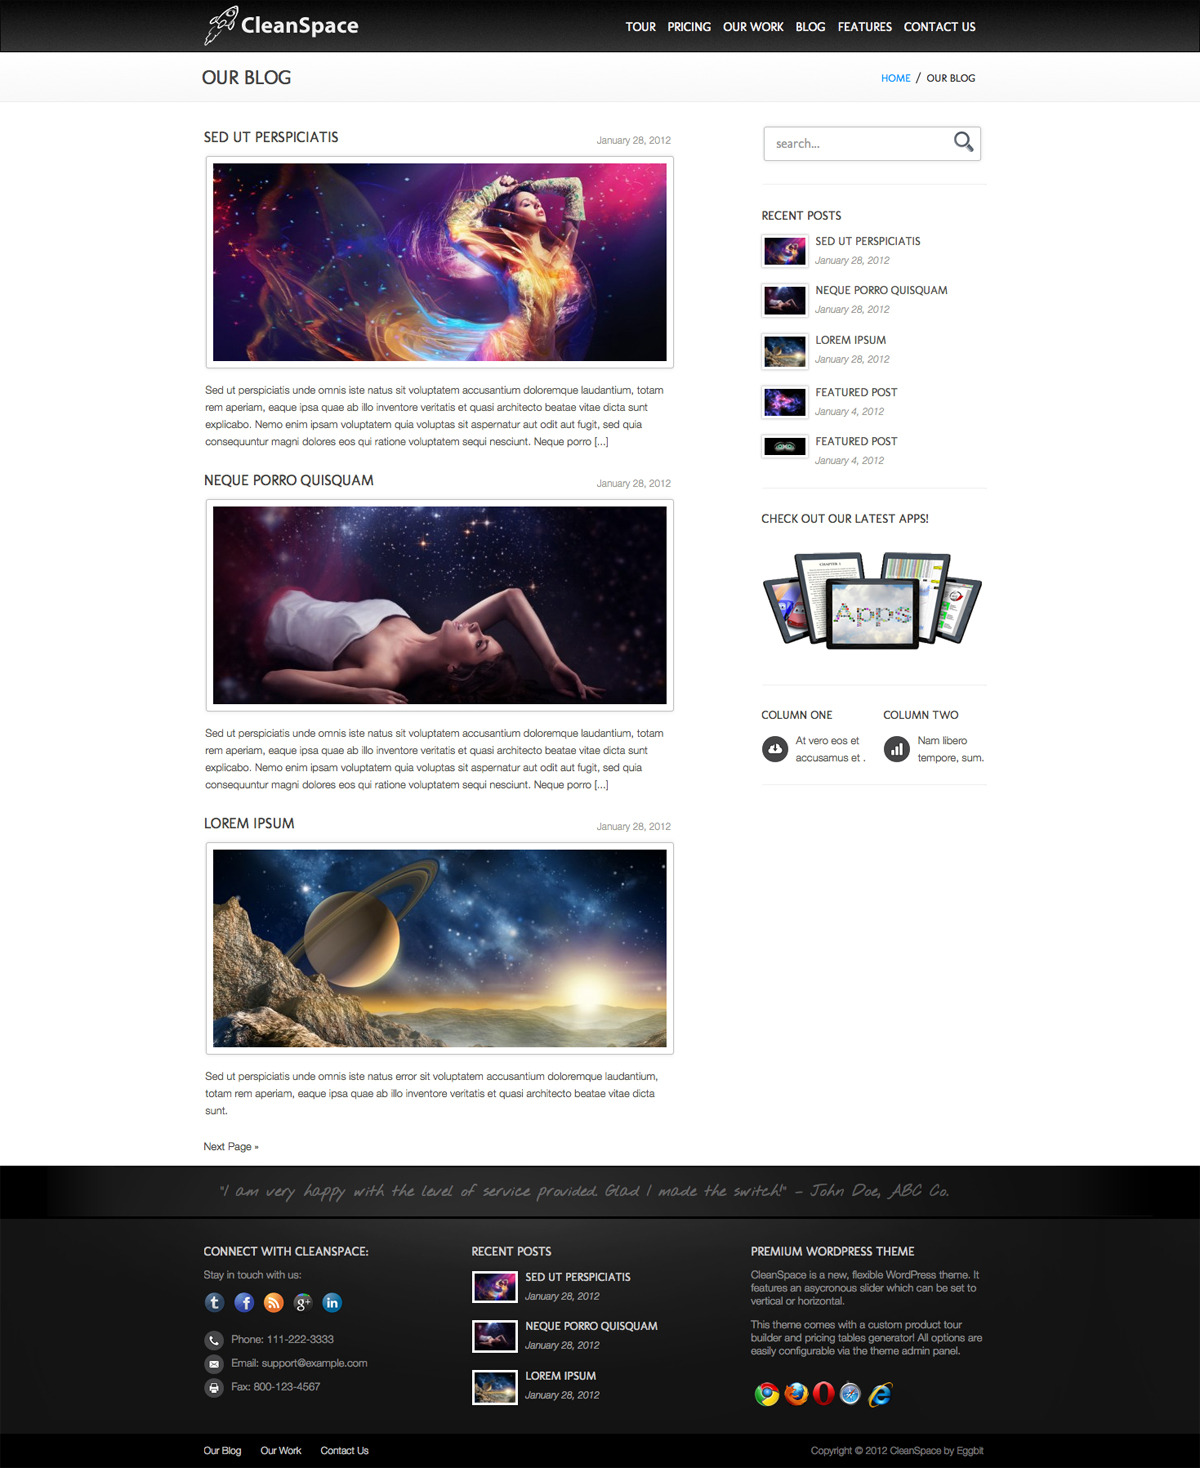 CleanSpace WordPress Theme - {\rtf1\ansi\ansicpg1252\cocoartf1038\cocoasubrtf360 {\fonttbl\f0\fswiss\fcharset0 Helvetica;} {\colortbl;\red255\green255\blue255;} \margl1440\margr1440\vieww9000\viewh8400\viewkind0 \pard\tx566\tx1133\tx1700\tx2267\tx2834\tx3401\tx3968\tx4535\tx5102\tx5669\tx6236\tx6803\ql\qnatural\pardirnatural  \f0\fs24 \cf0 Screenshot of theme blog page.}